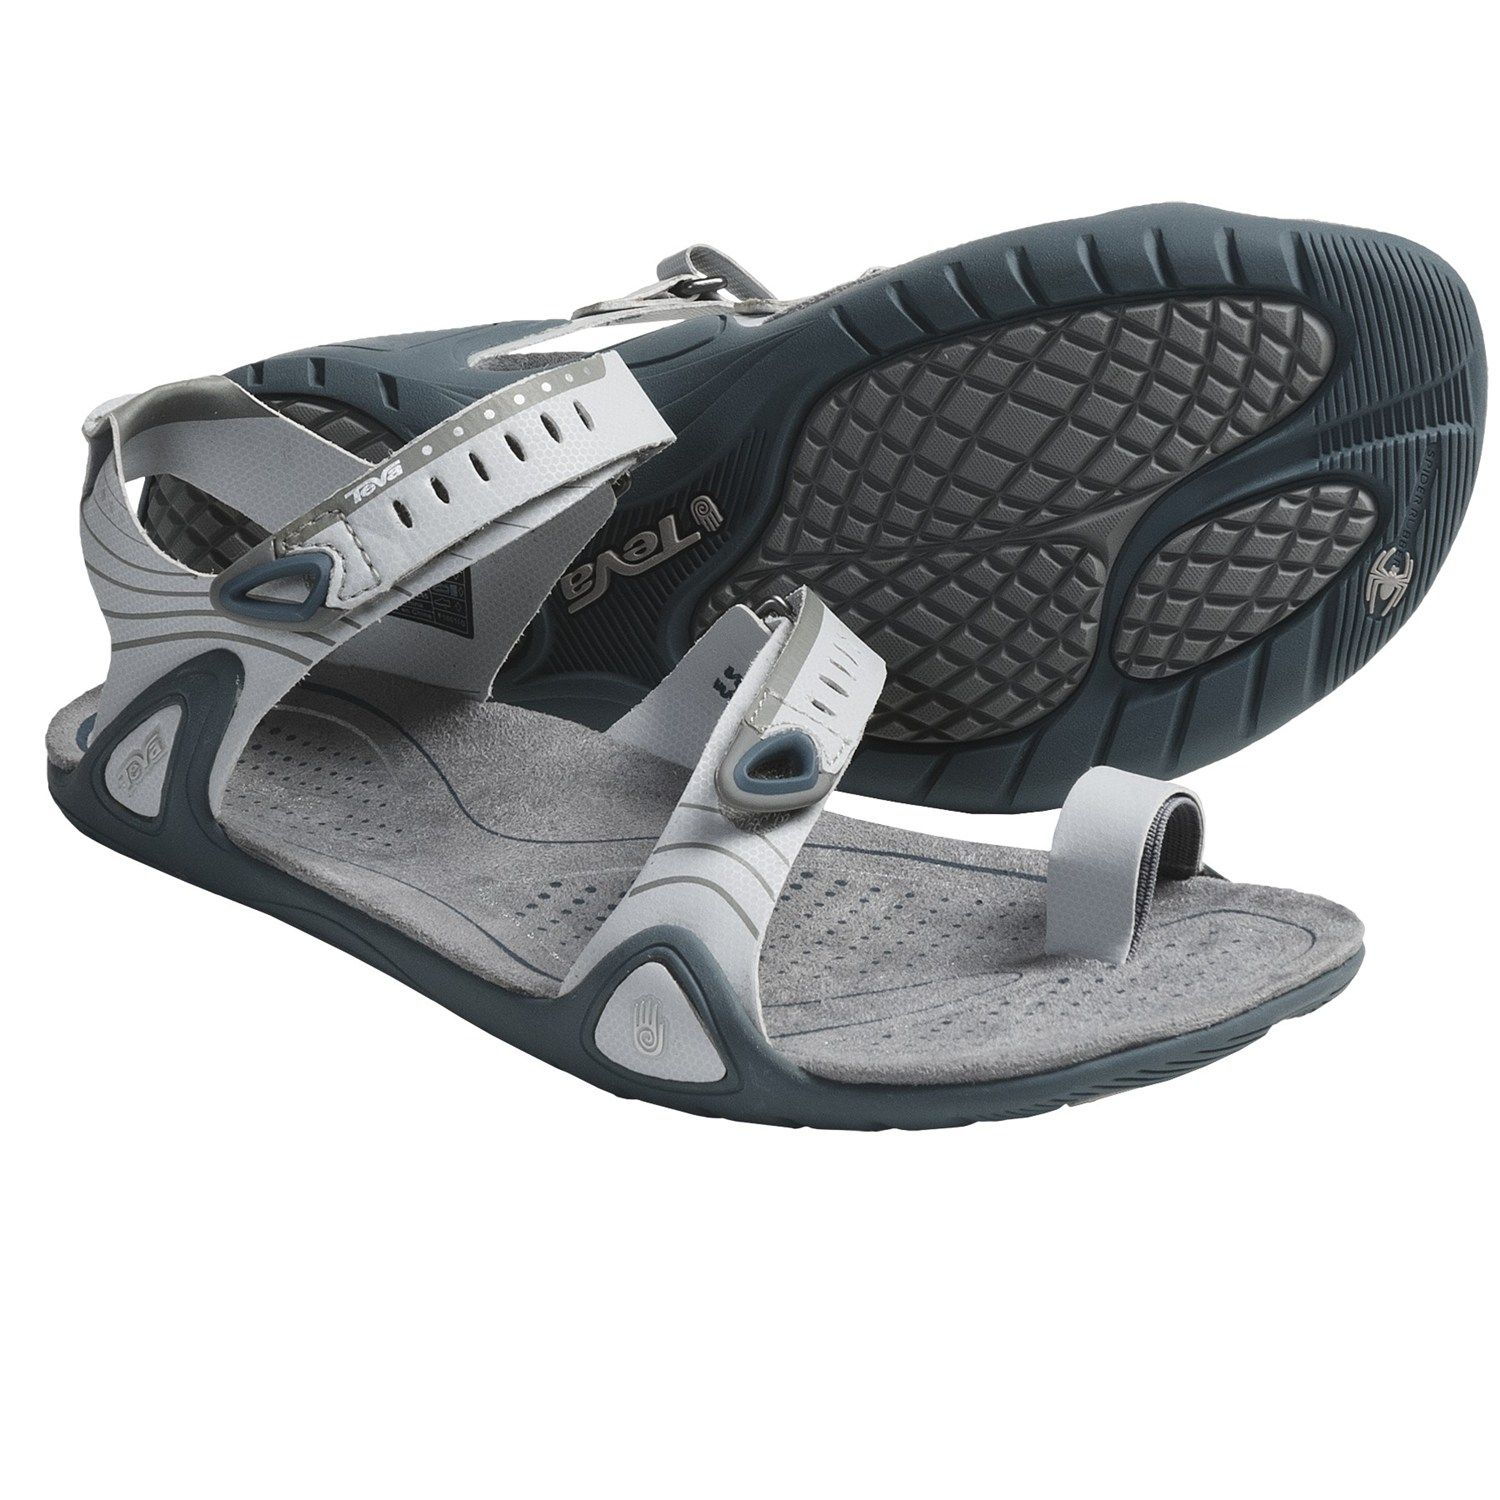 166bf4a4a Teva zilch sport sandals for women shoes sandals sport jpg 1500x1500 Teva  zilch